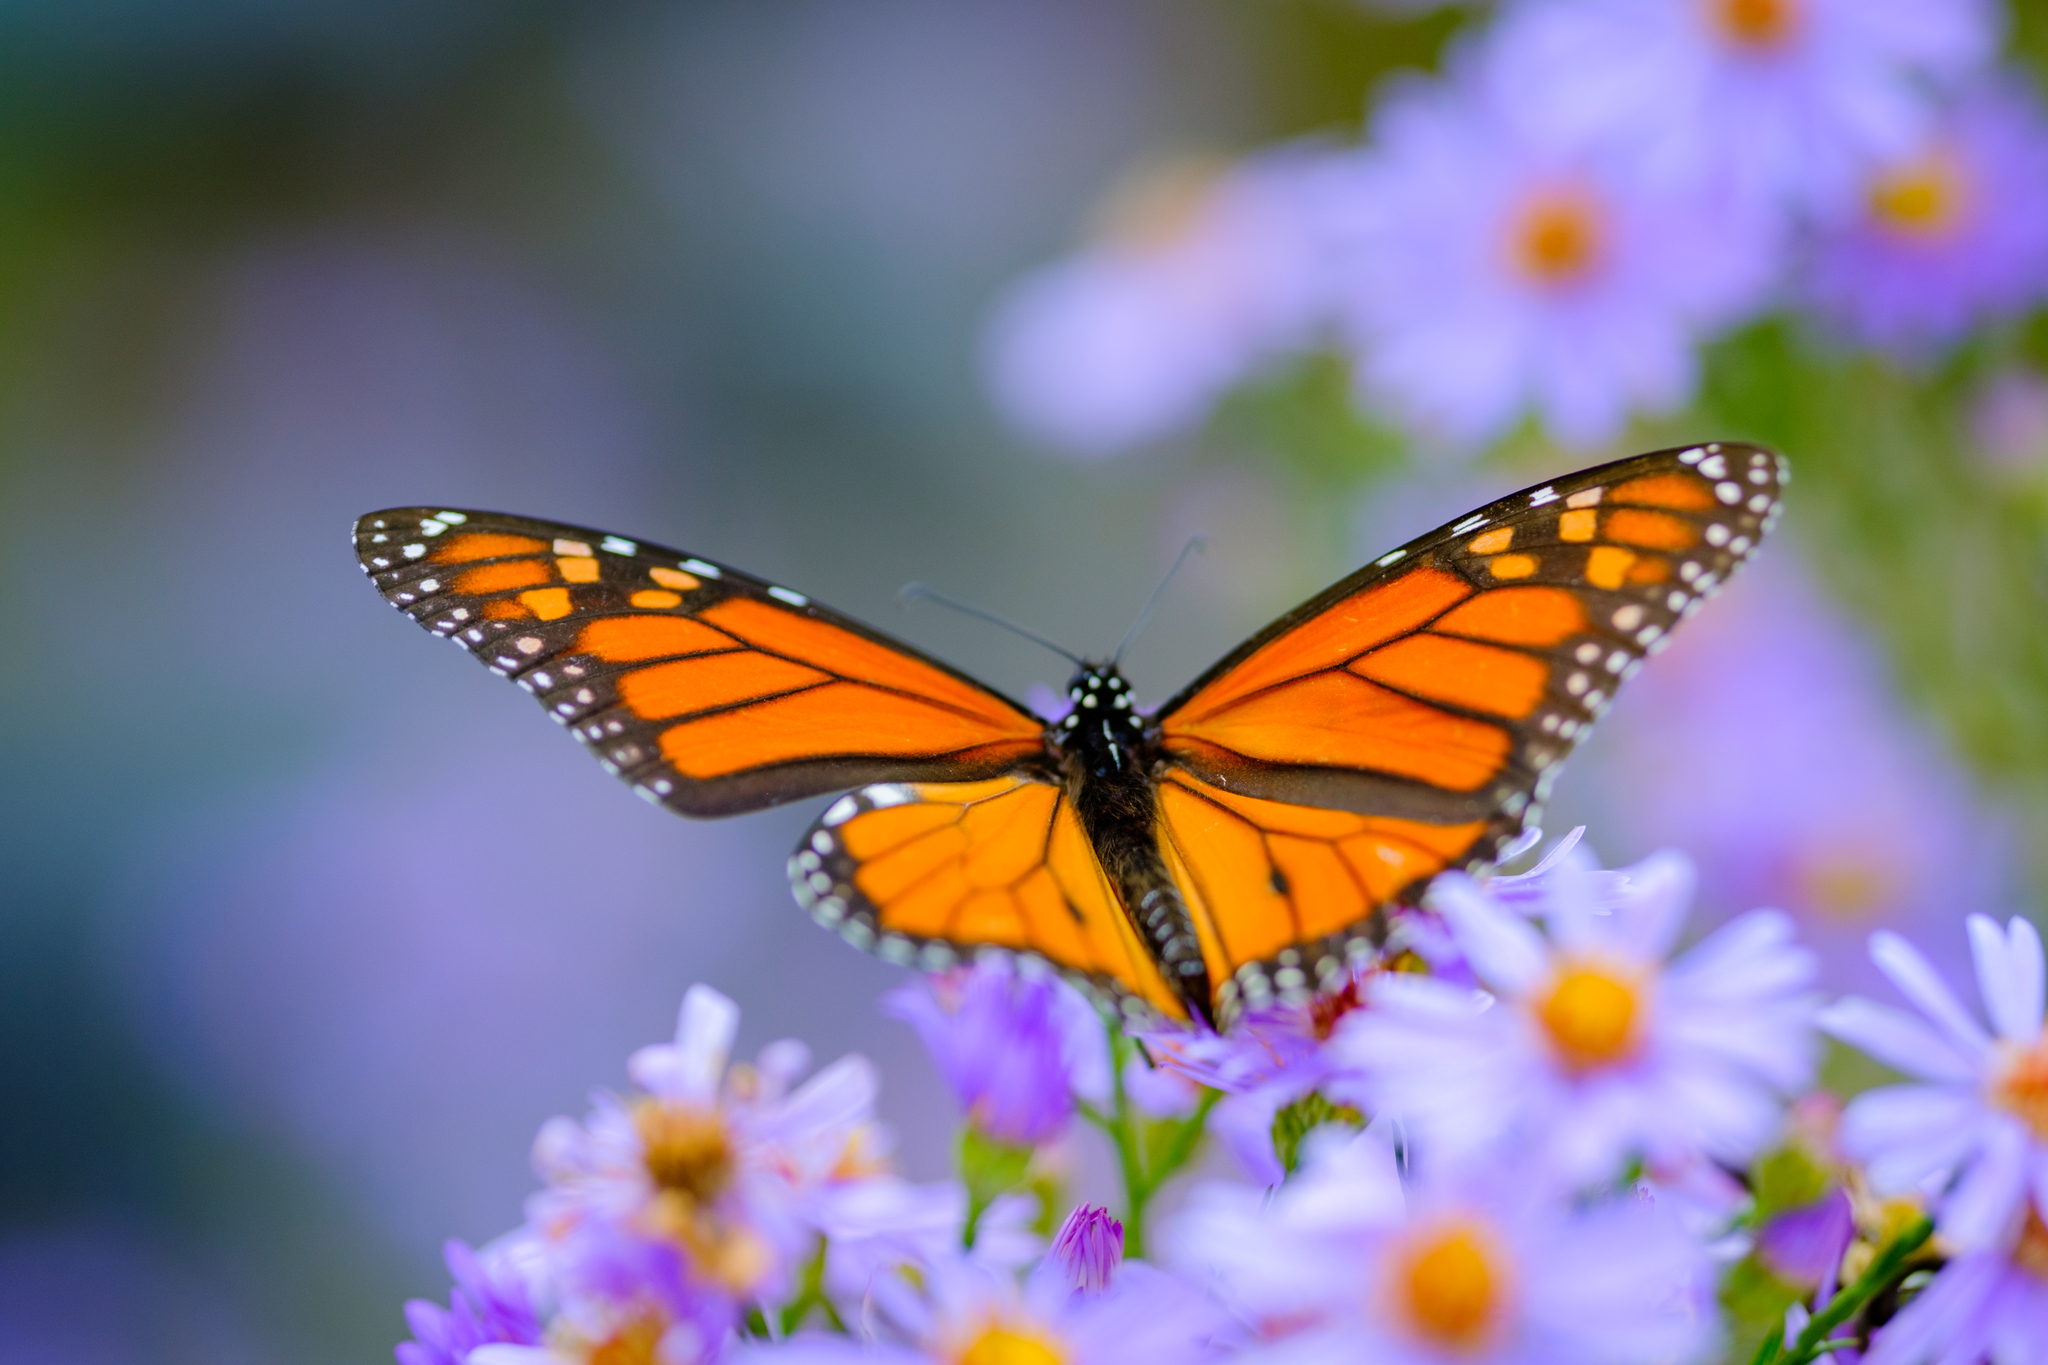 A bright orange and black monarch butterfly sits on purp